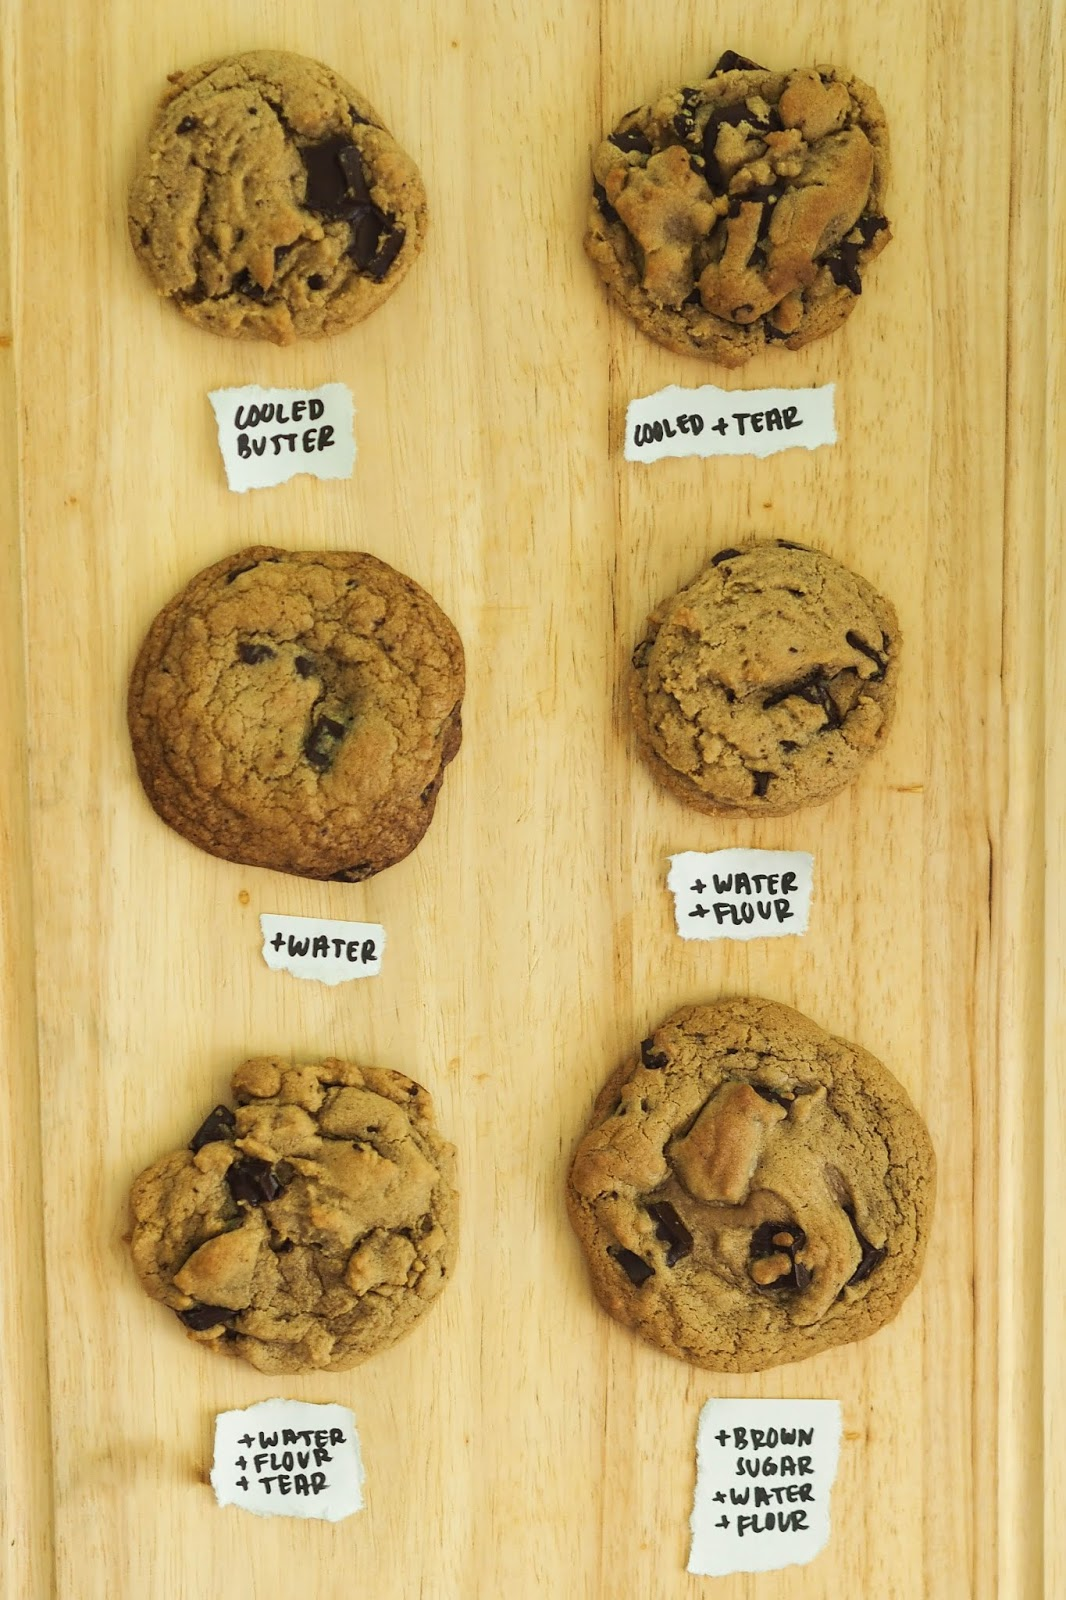 Cookie Lab: Making the Perfect Chocolate Chip Cookie